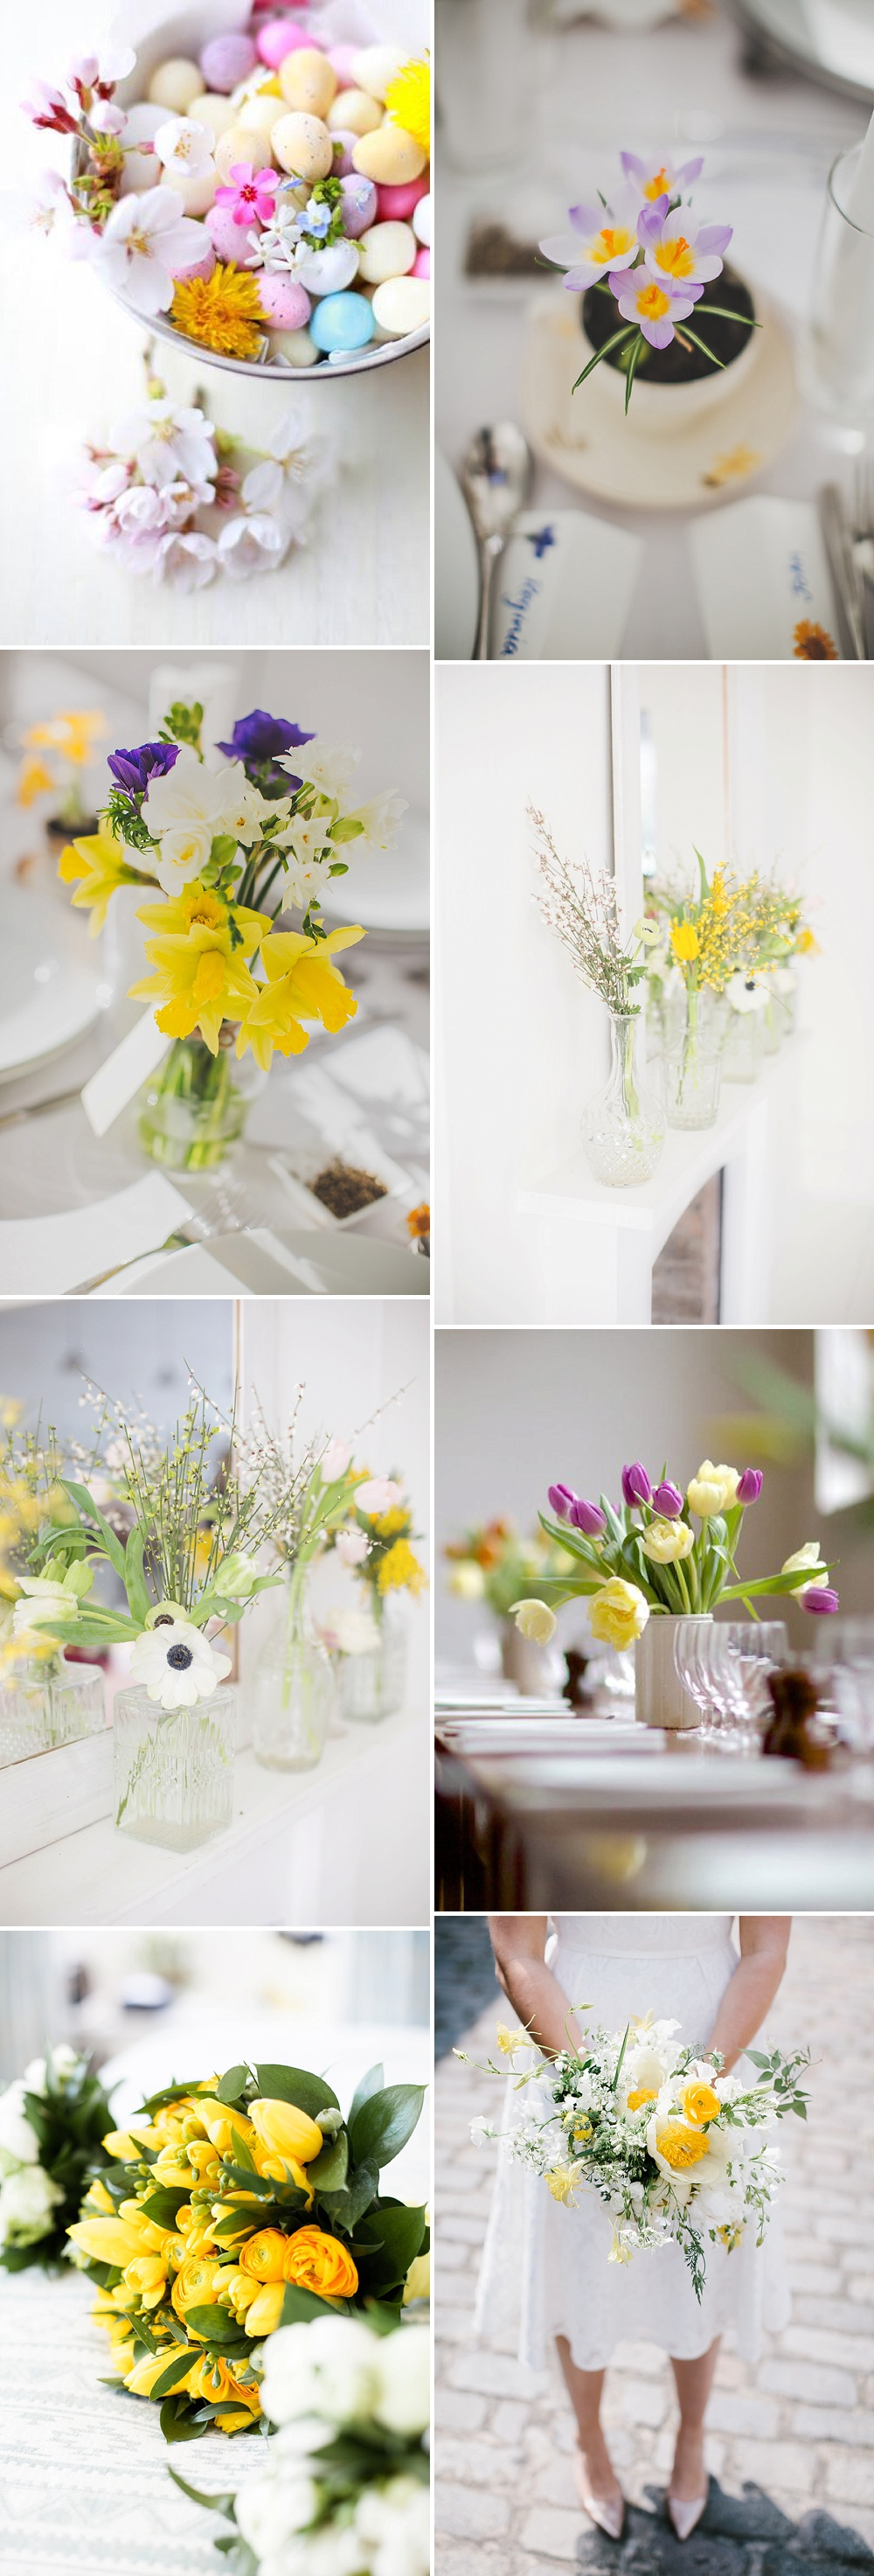 Spring Floral Inspiration For Weddings The Love Lust List